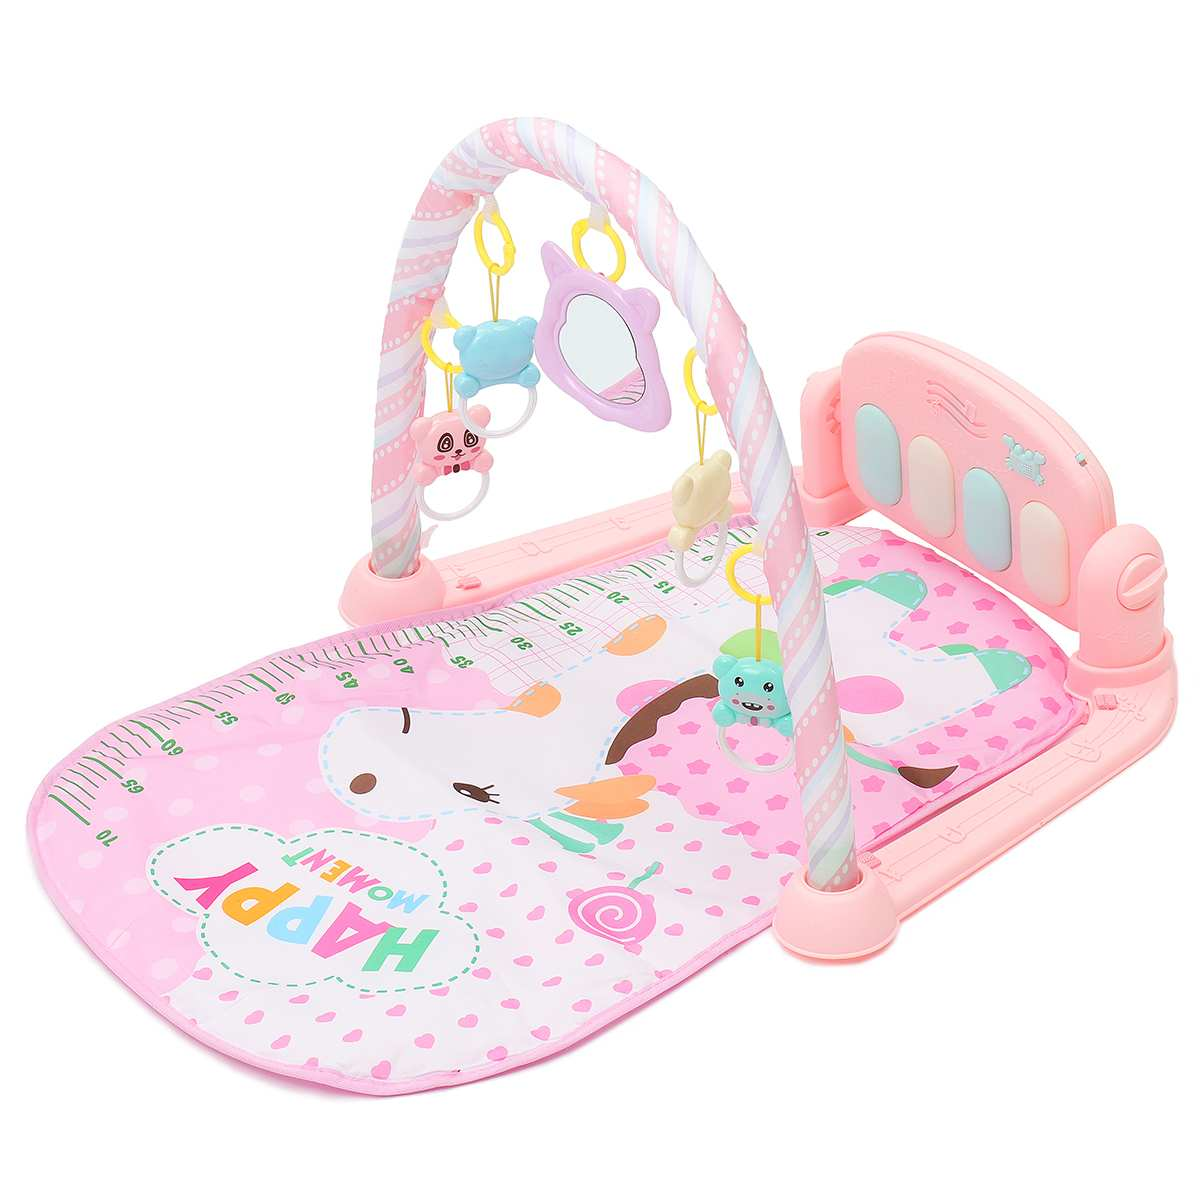 Mat Kids Rug Educational Puzzle Carpet With Piano Keyboard And Cute Animal Playmat Baby Gym Crawling Activity Mat Toys